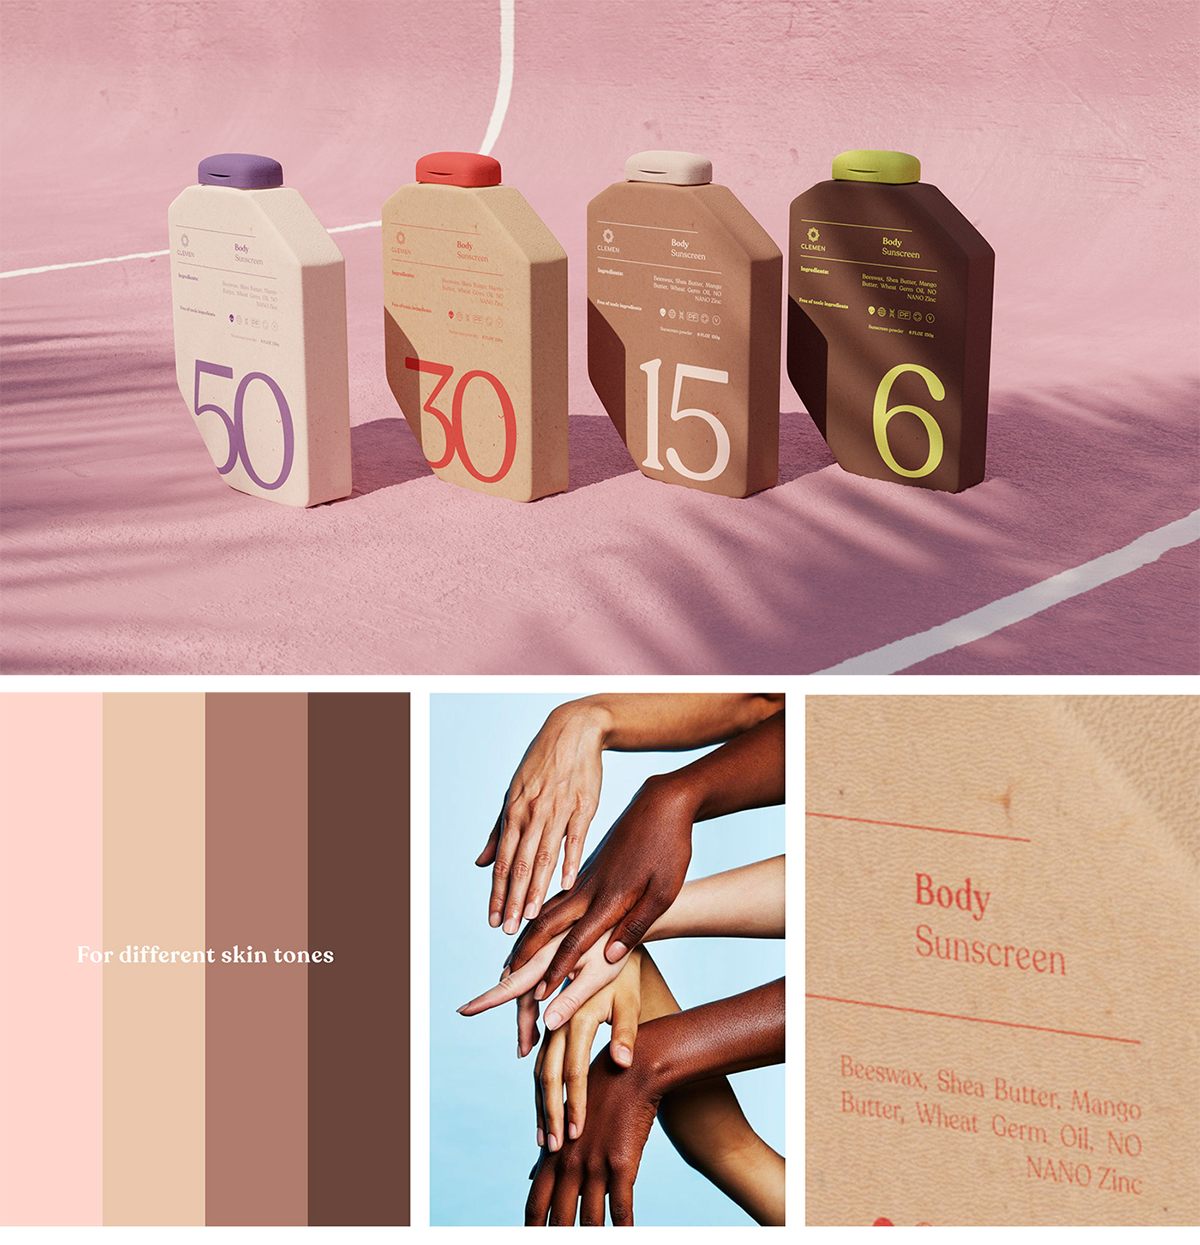 A graphic showcasing sunscreen in a variety of different skin tones.